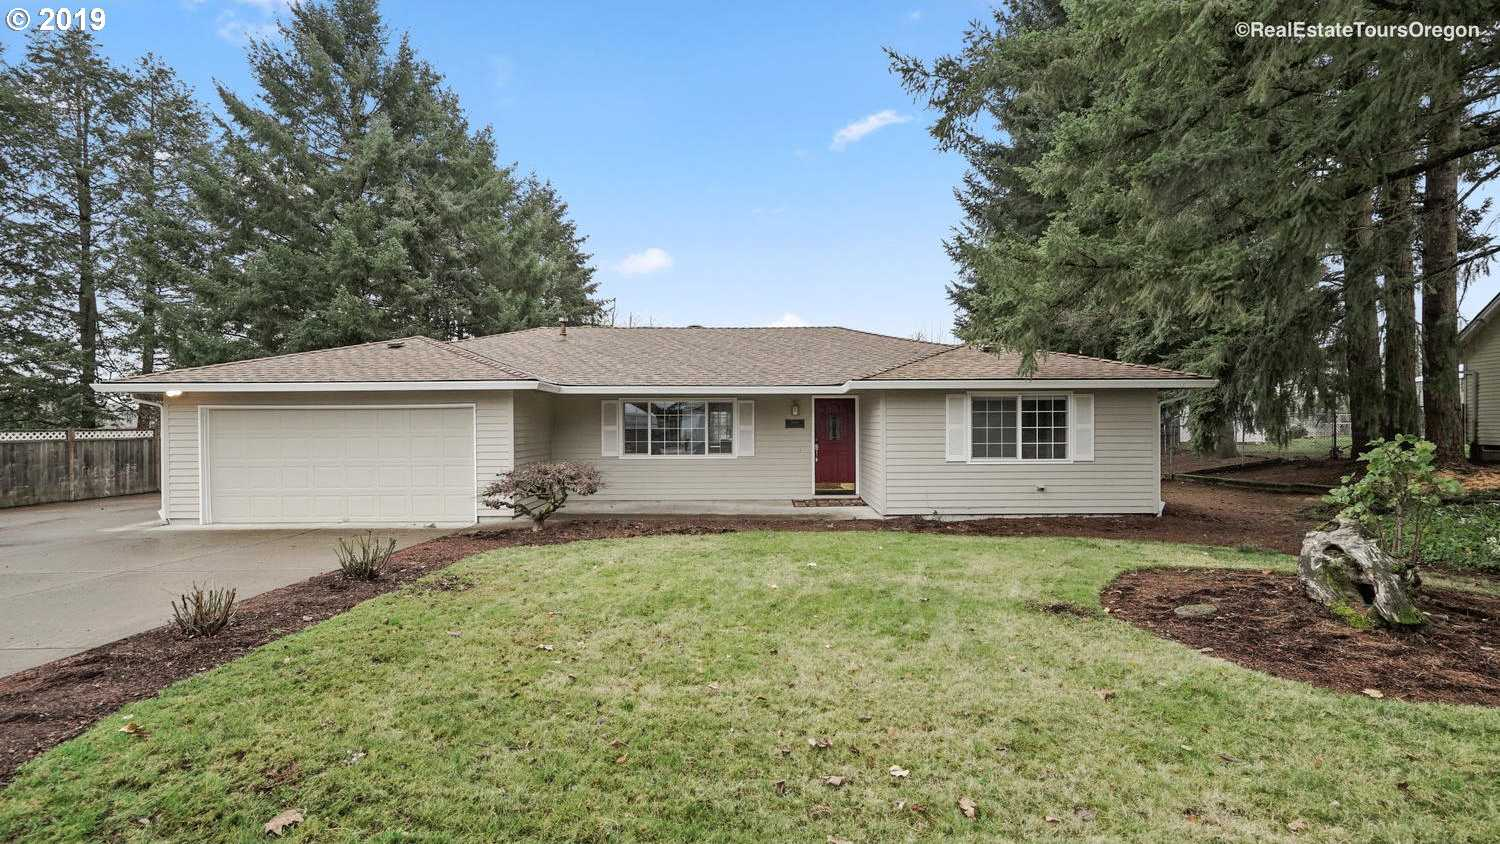 $550,000 - 3Br/2Ba -  for Sale in Forest Grove